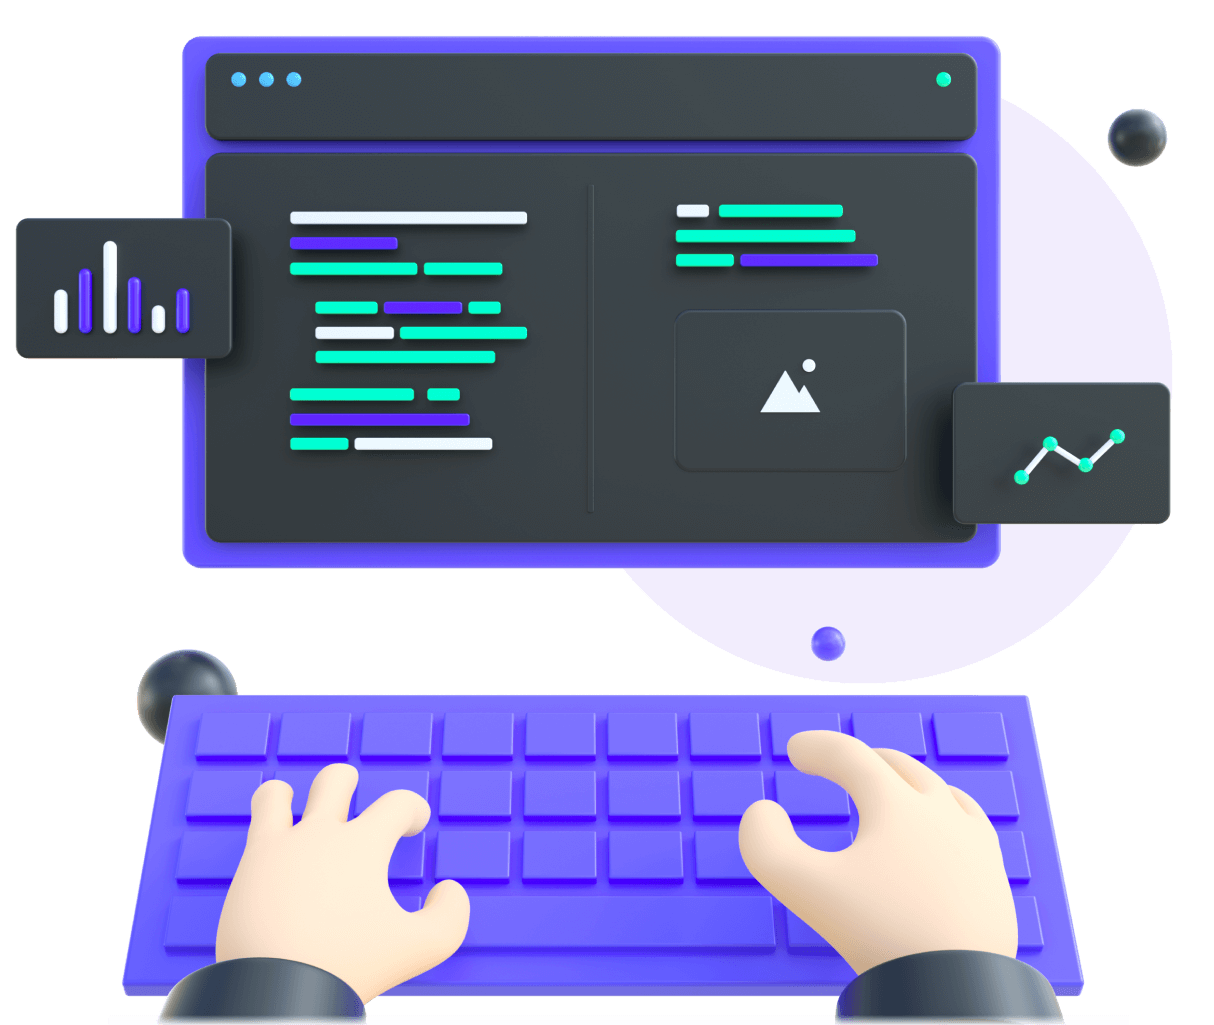 3d illustration showing hands that are building code on a computer